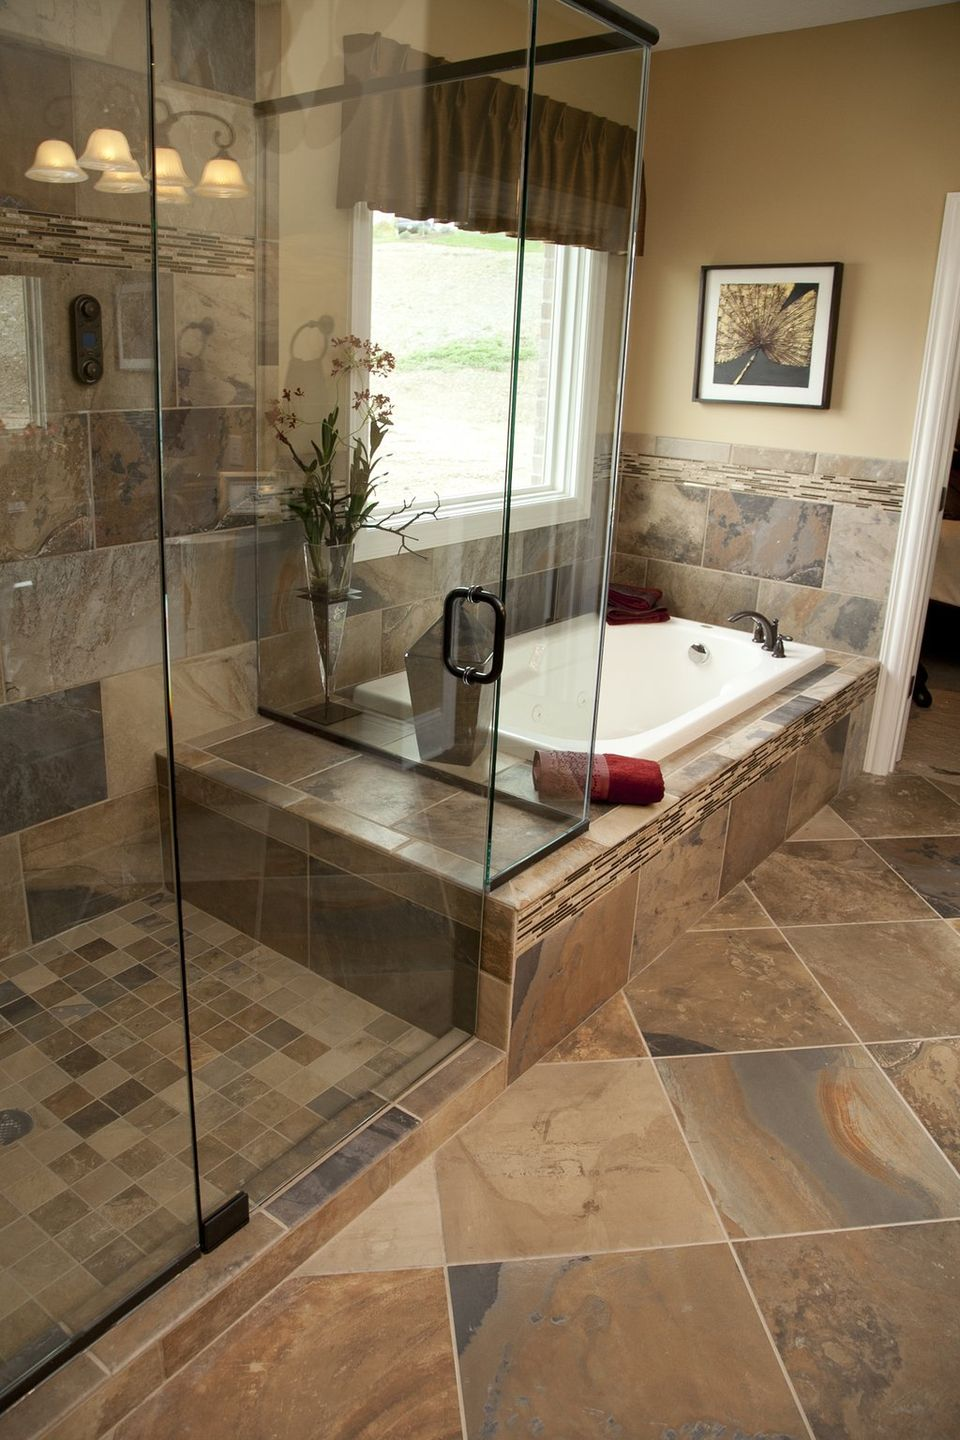 33 stunning pictures and ideas of natural stone bathroom for Bath tiles design ideas